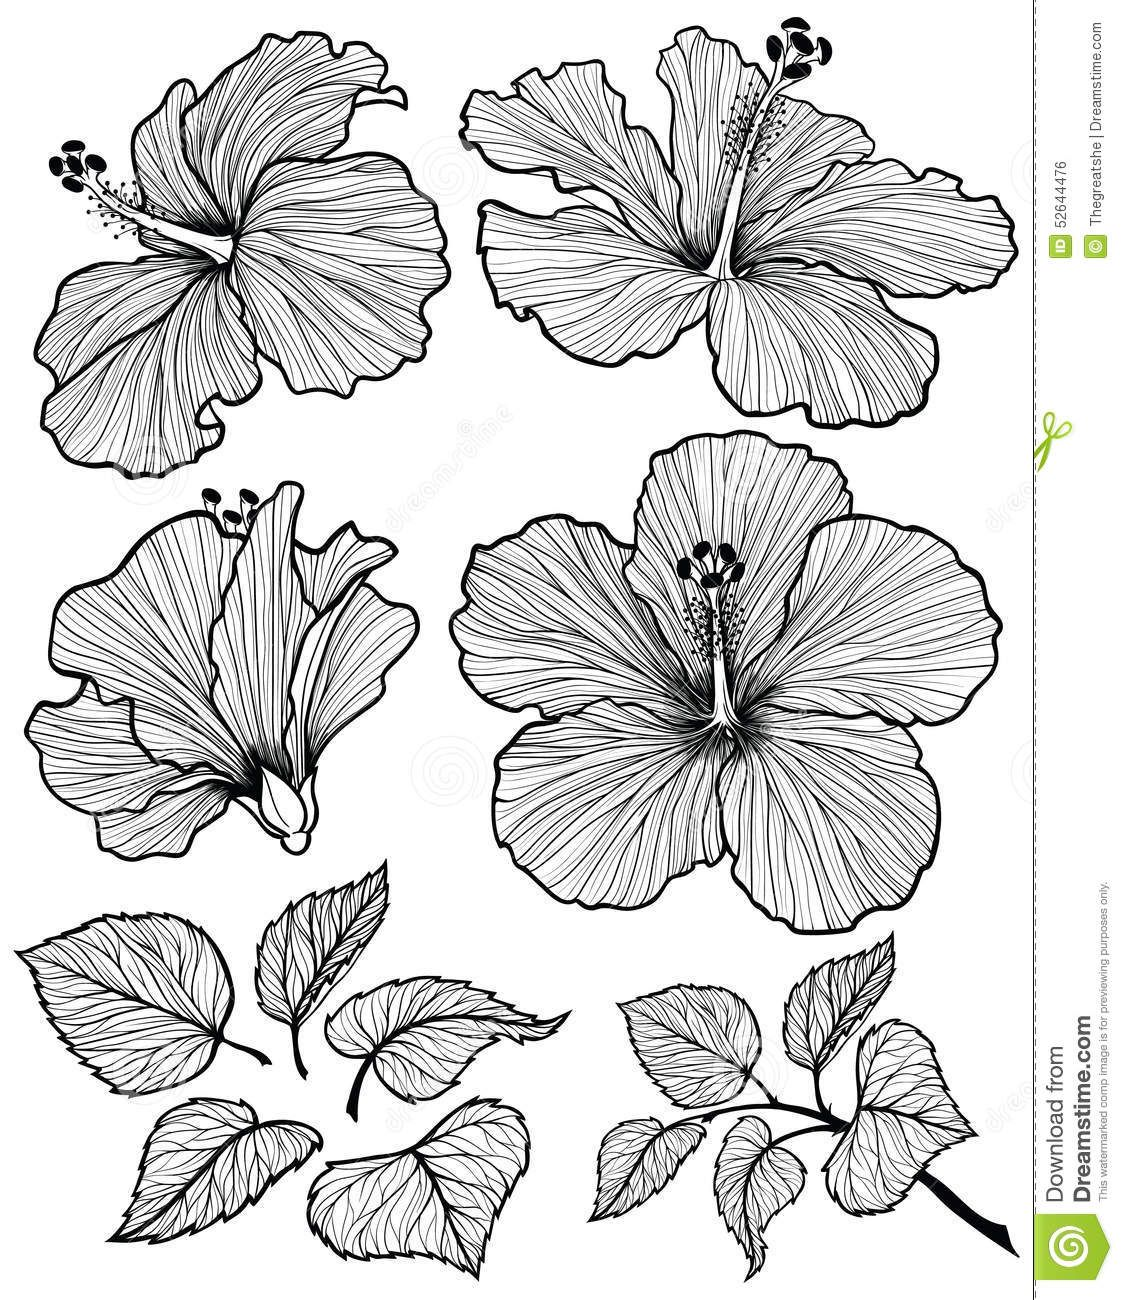 Hibiscus Flower Line Drawing : Hibiscus flower graphic head set with leaves and branch